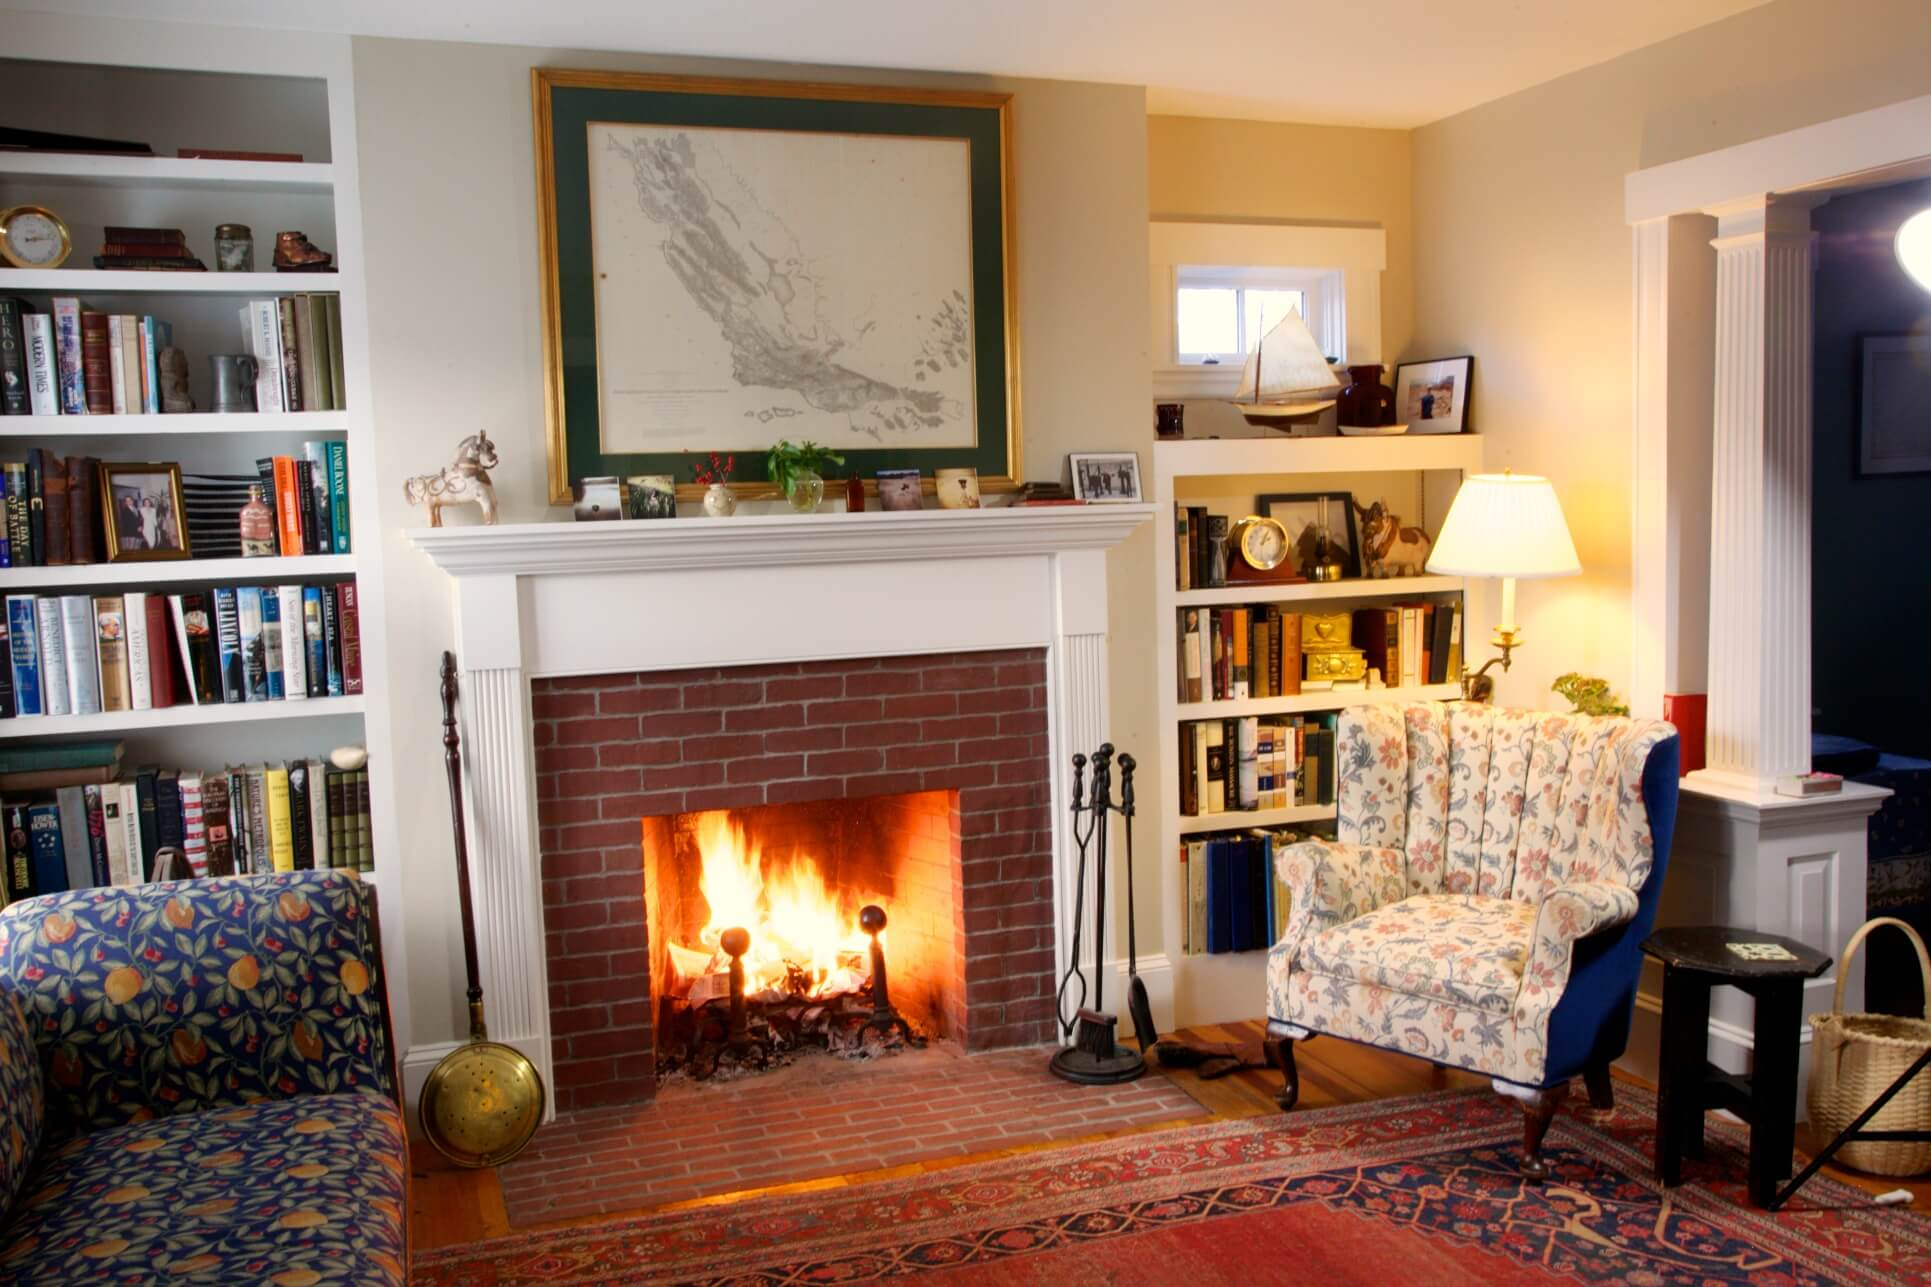 Living Room Remodel with Beautiful Fireplace and Mantel Newburyport, MA